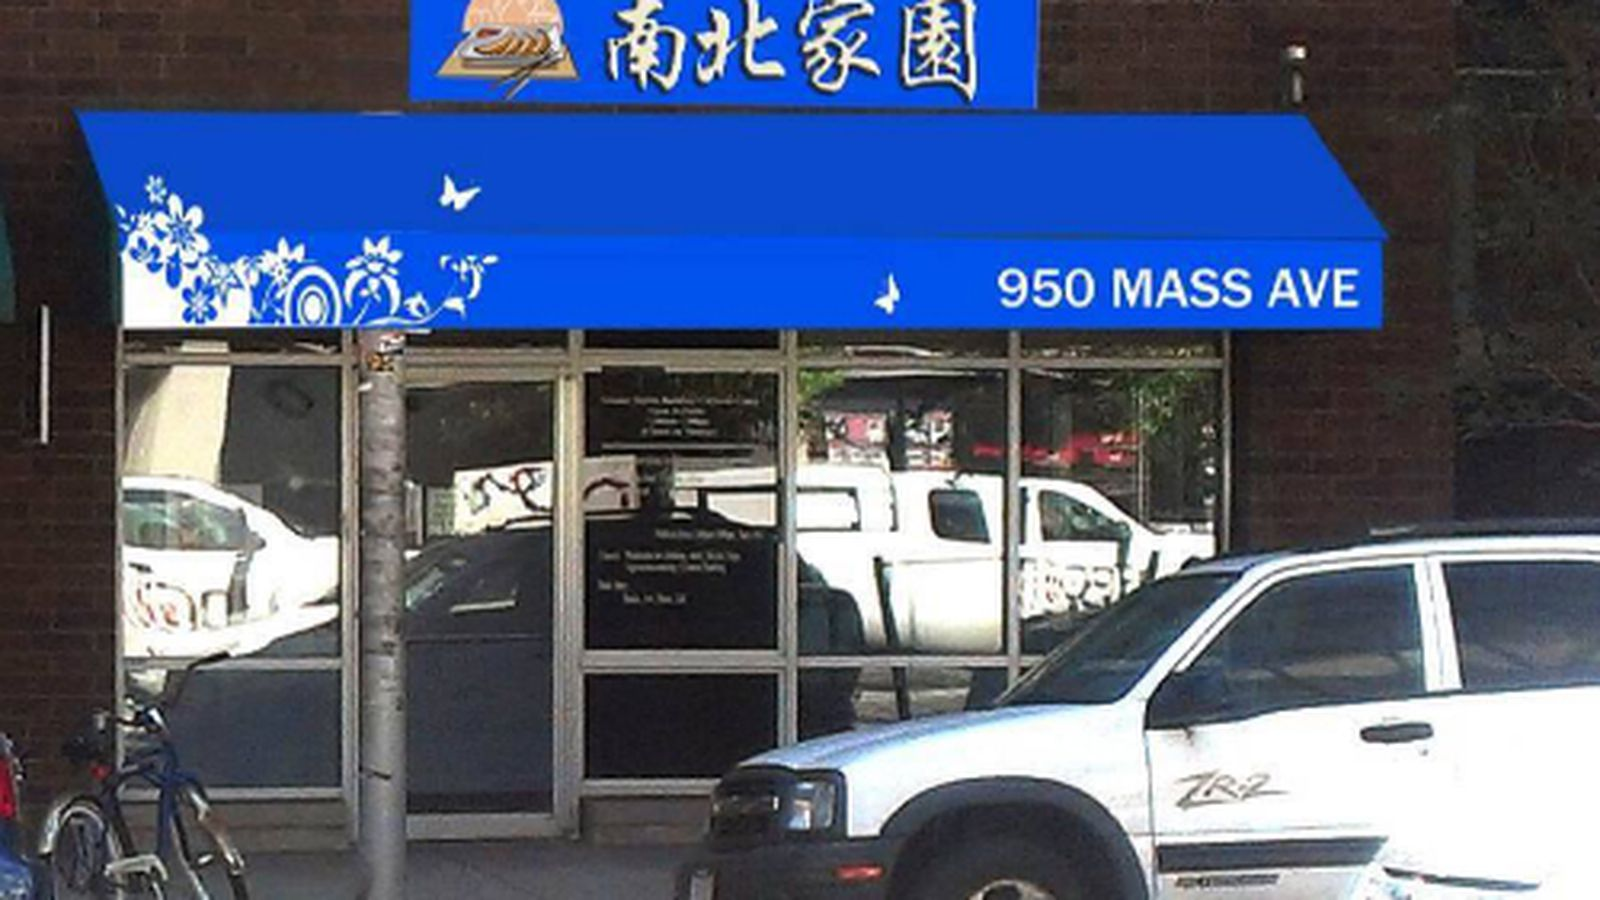 Dumpling House Opens in Central Today - Eater Boston